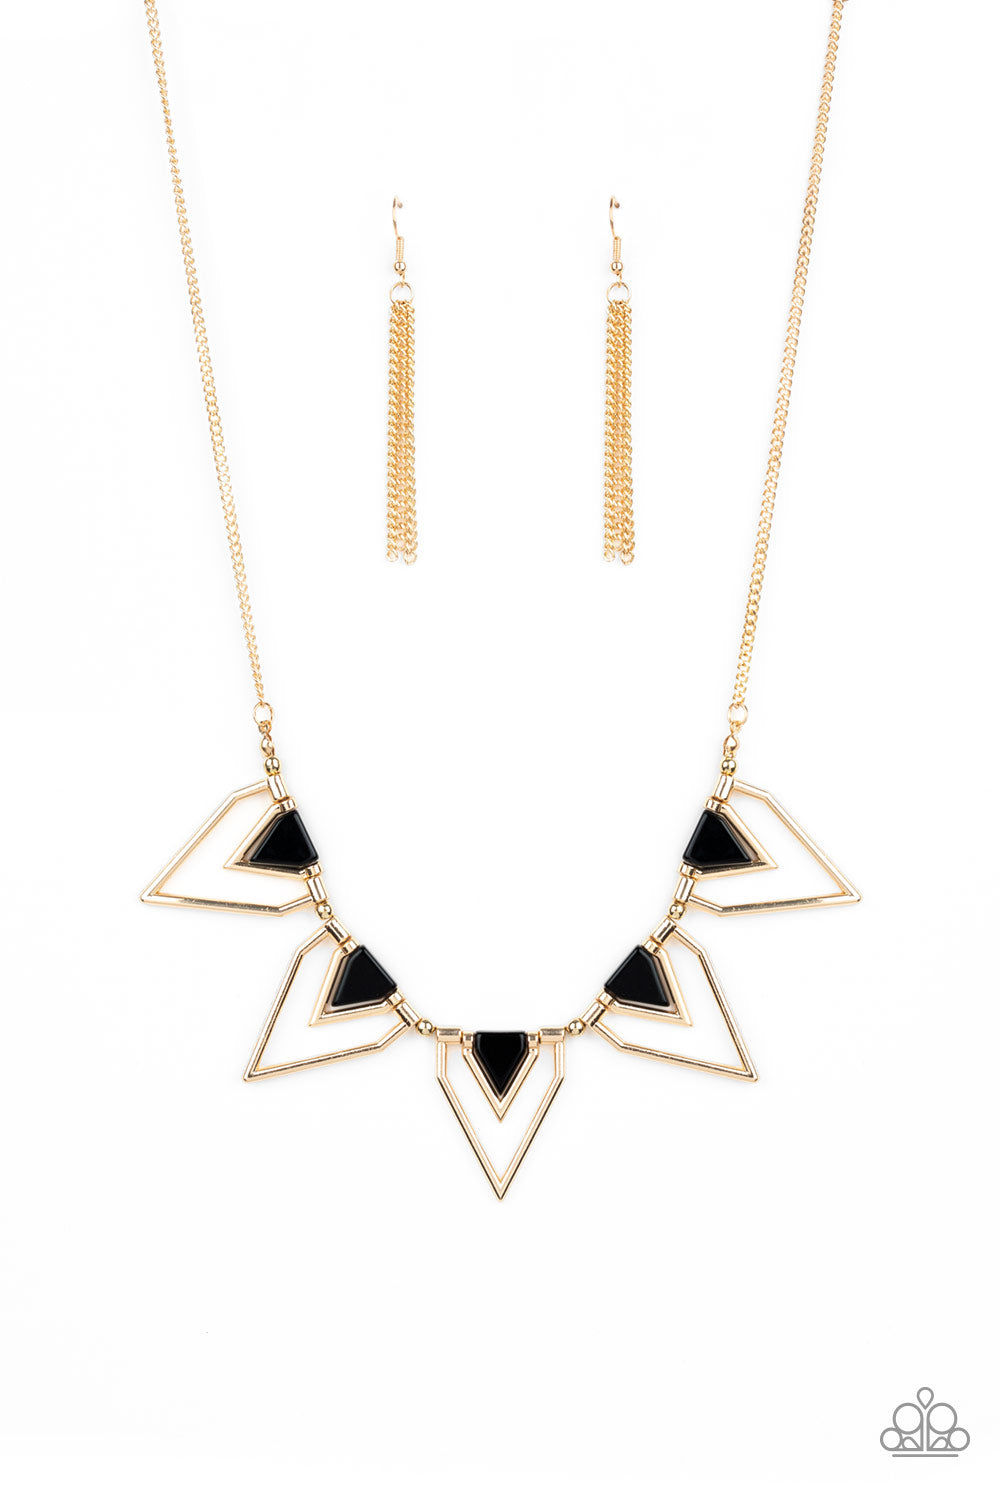 The Pack Leader Paparazzi Necklace-Gold